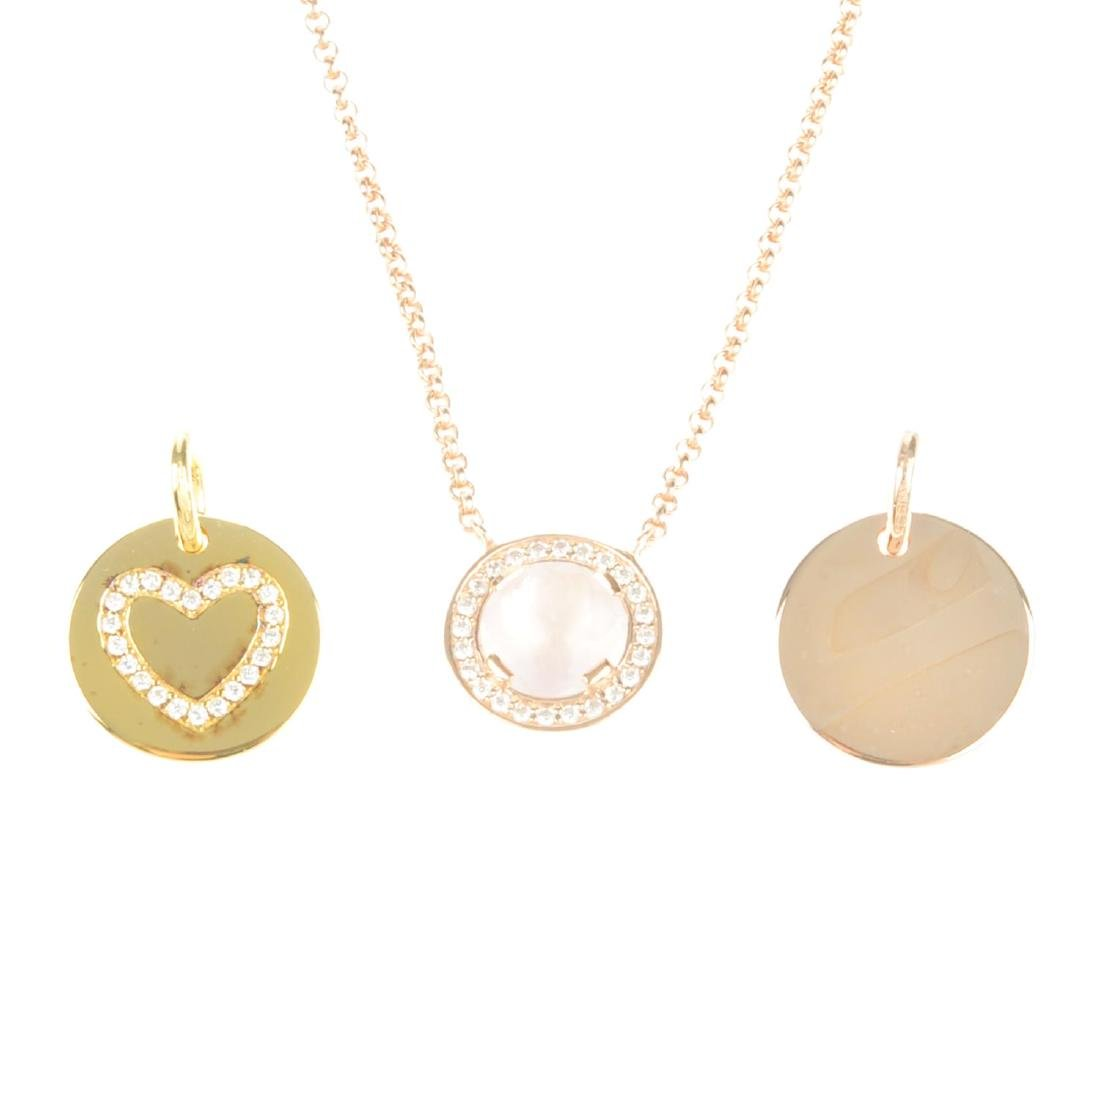 THOMAS SABO - nine items of jewellery. To include a